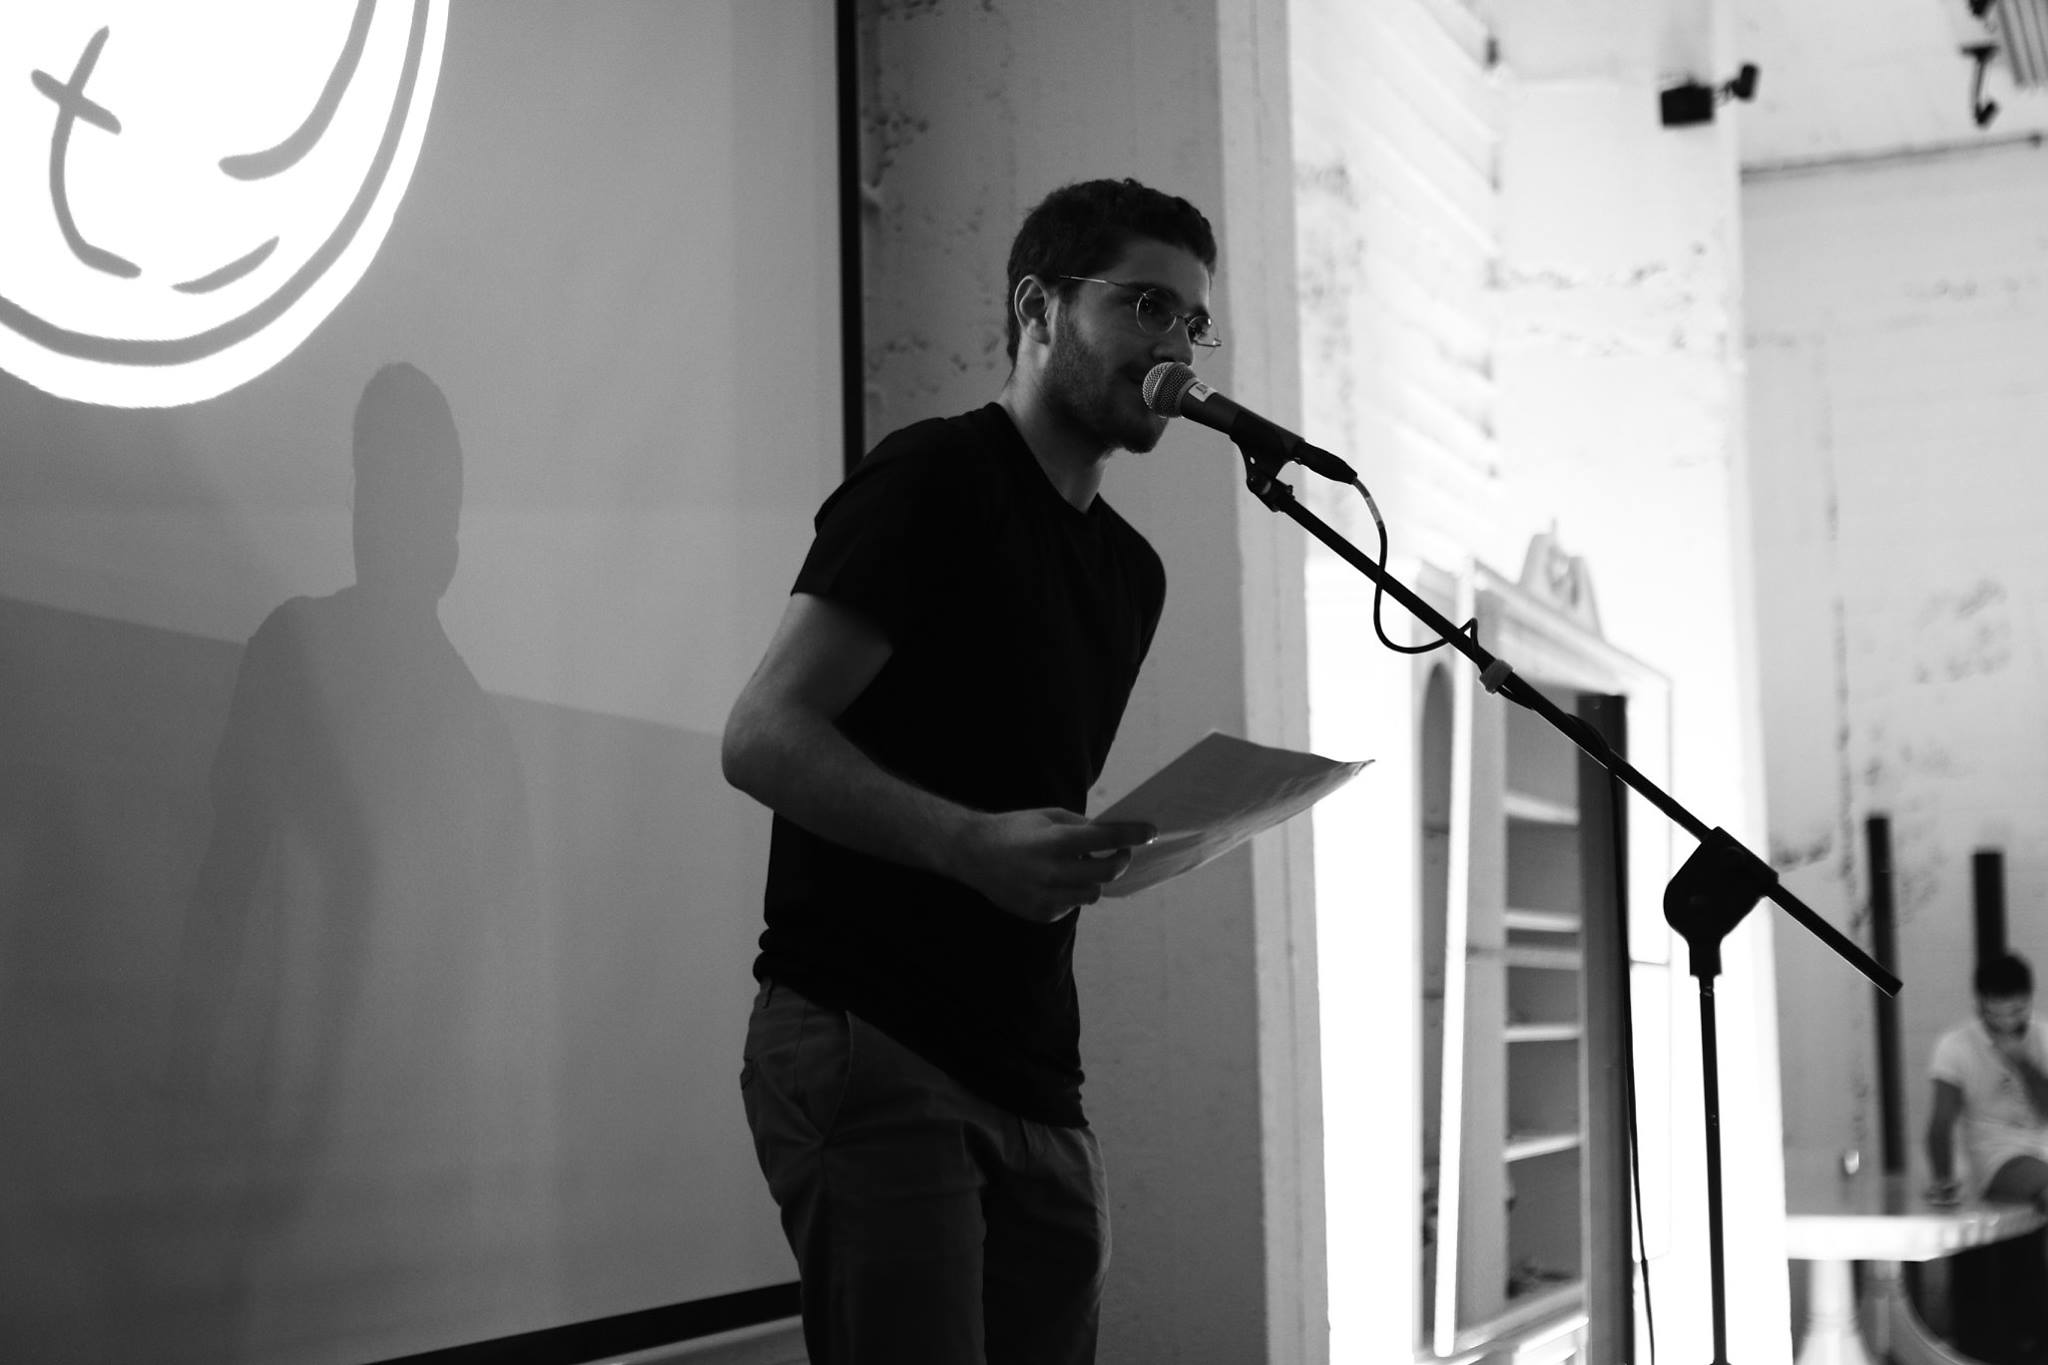 Queer Poetry Night - Wednesday, May 16, 2018